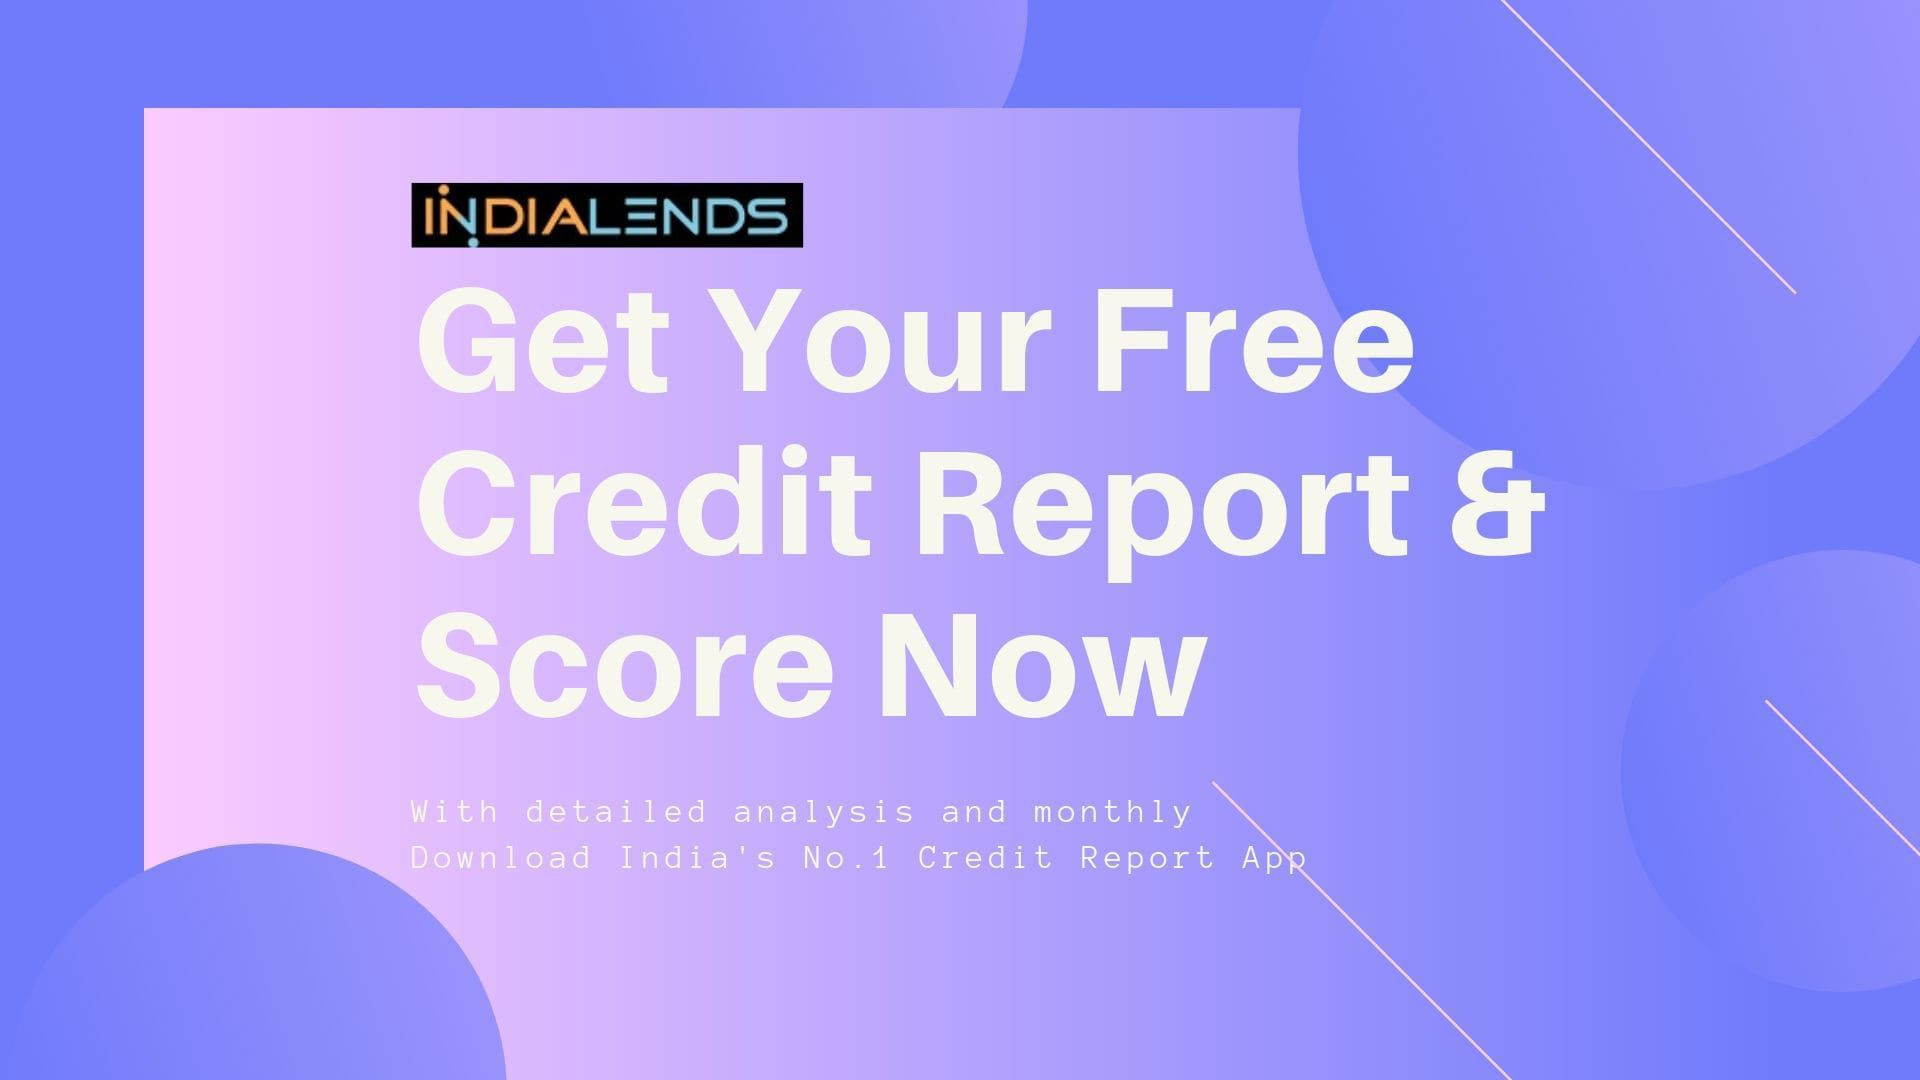 You Know Having A Healthy Credit Report And Score Is Important